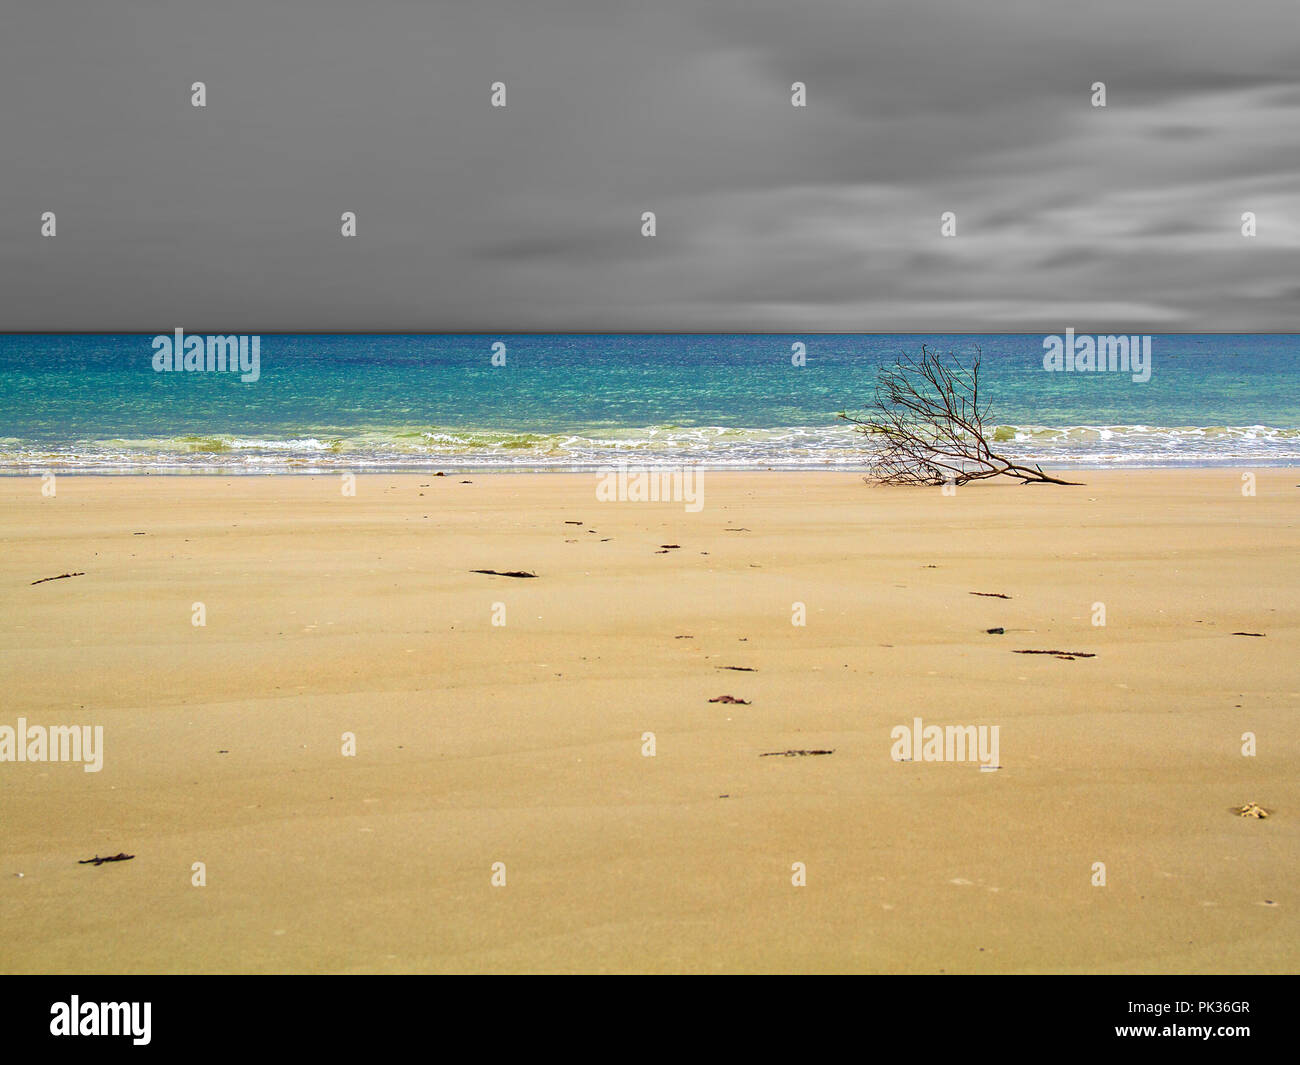 Branch on shore of Myall beach, Cape Tribulation, Australia, Enchanted Landscapes, black-and-white and colour - Stock Image